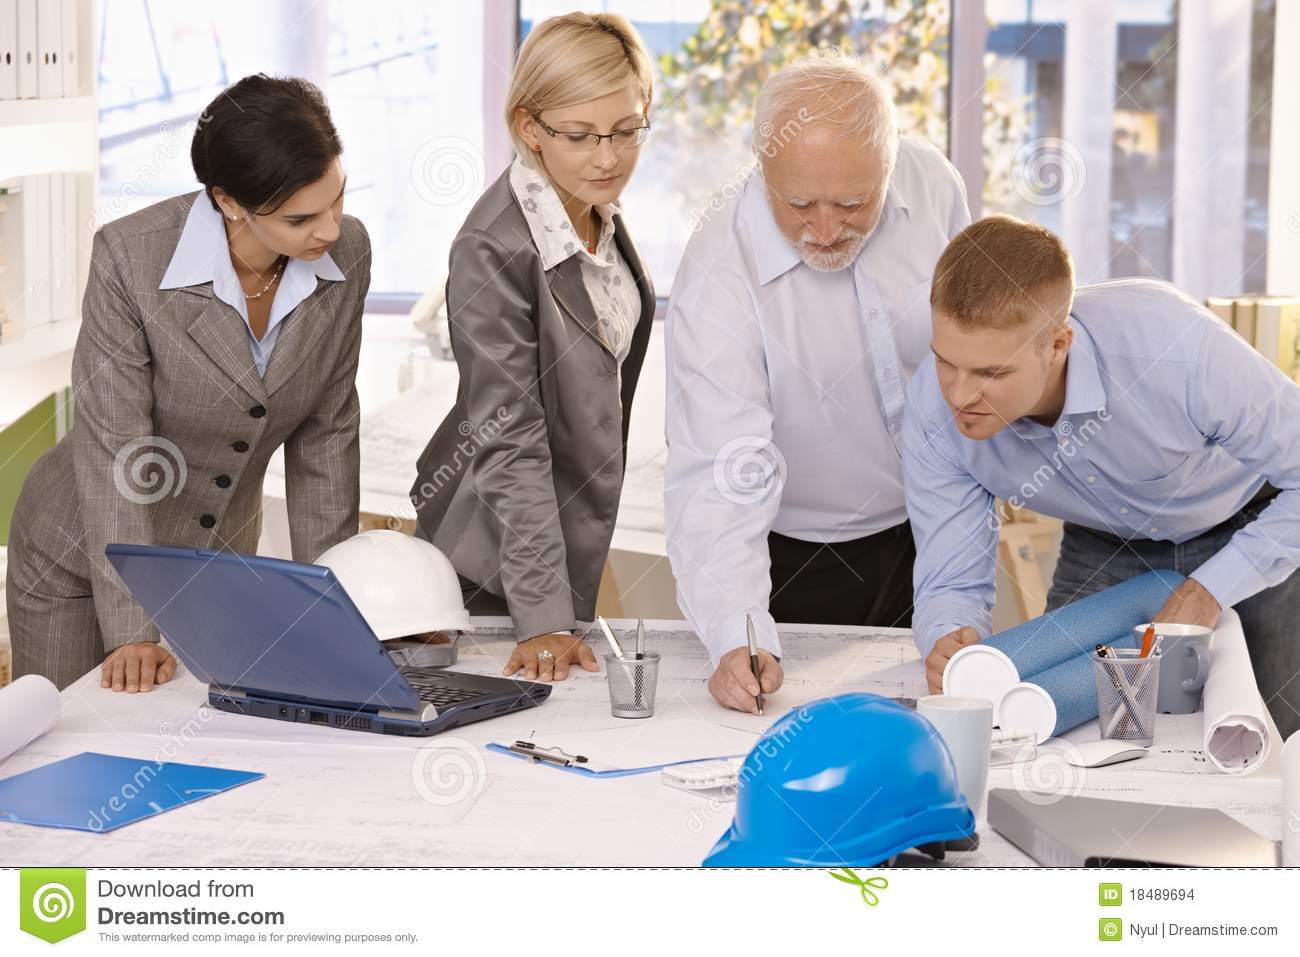 Architect team working together in office